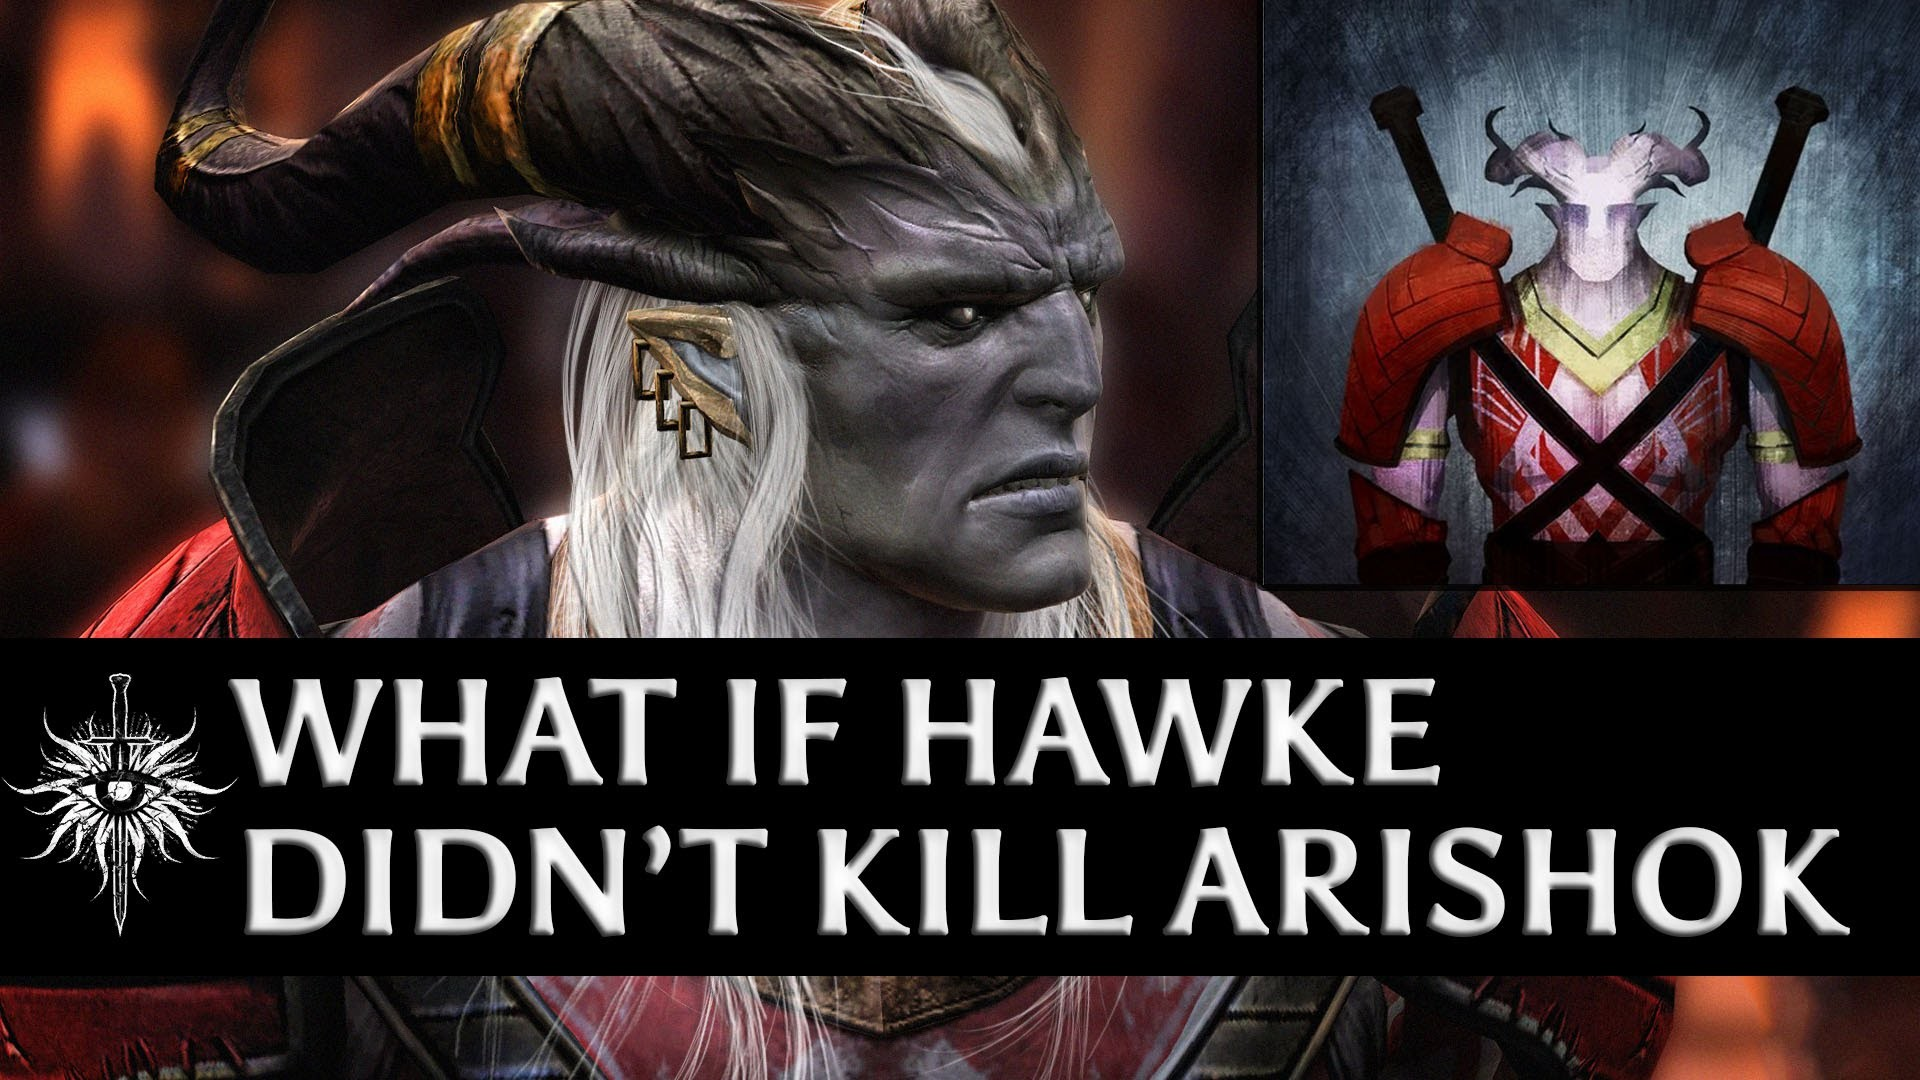 1920x1080 Dragon Age: Inquisition - What if Hawke didn't kill the Arishok in DA2 -  YouTube